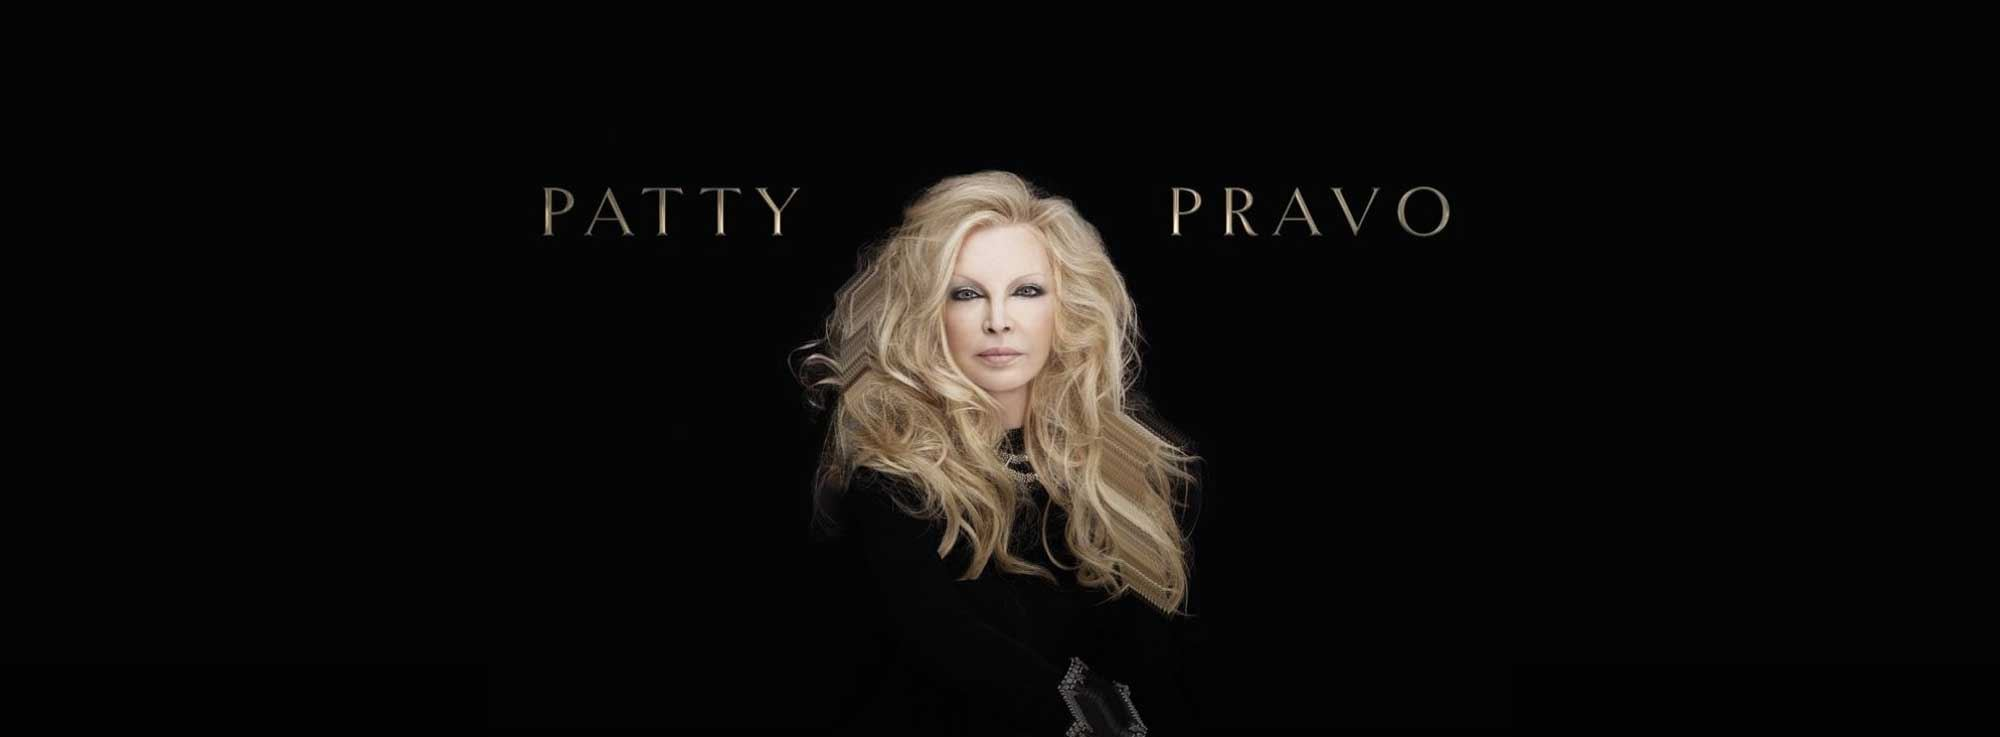 Cerignola: Patty Pravo - Eccomi tour